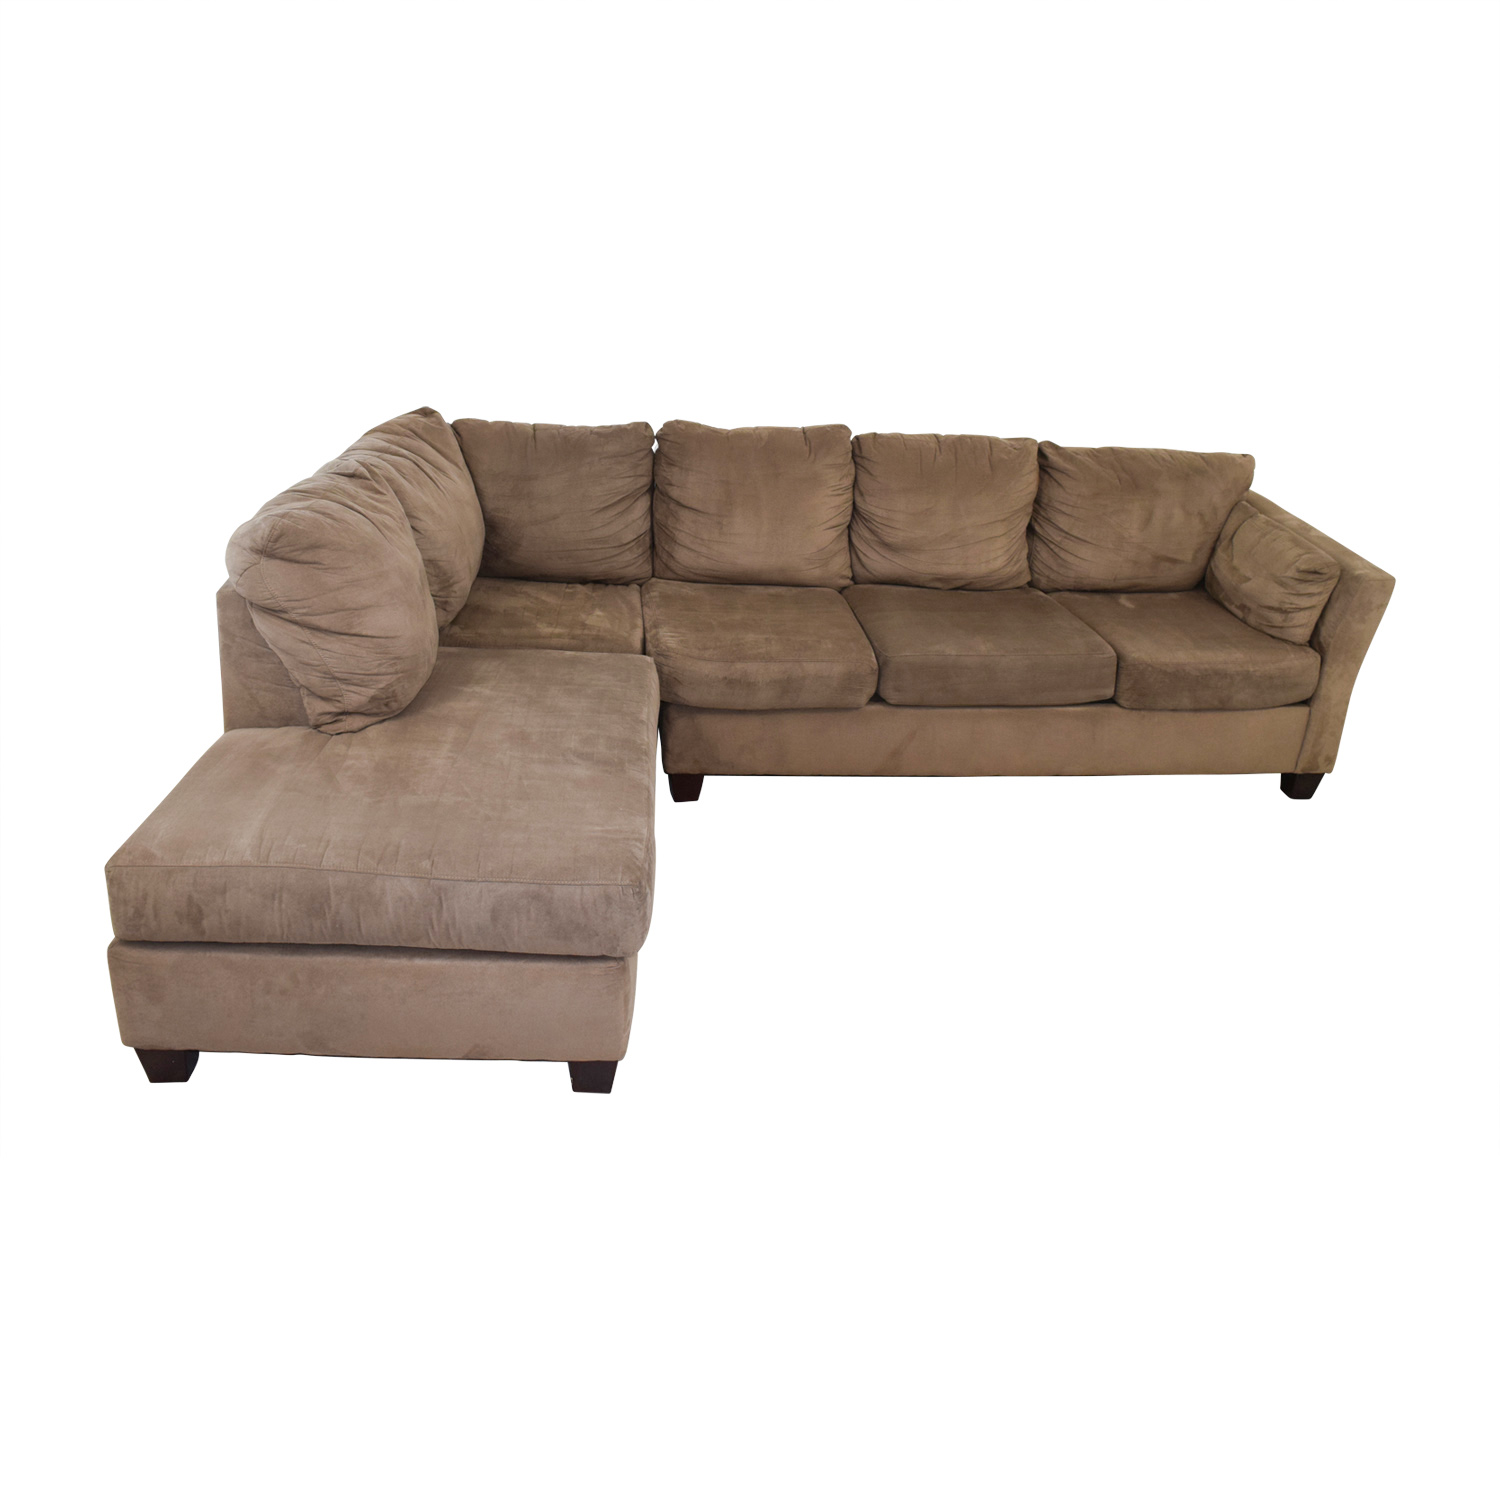 sectional sofas under 1000 00 sofa chocolate color paredes sectionals used for sale